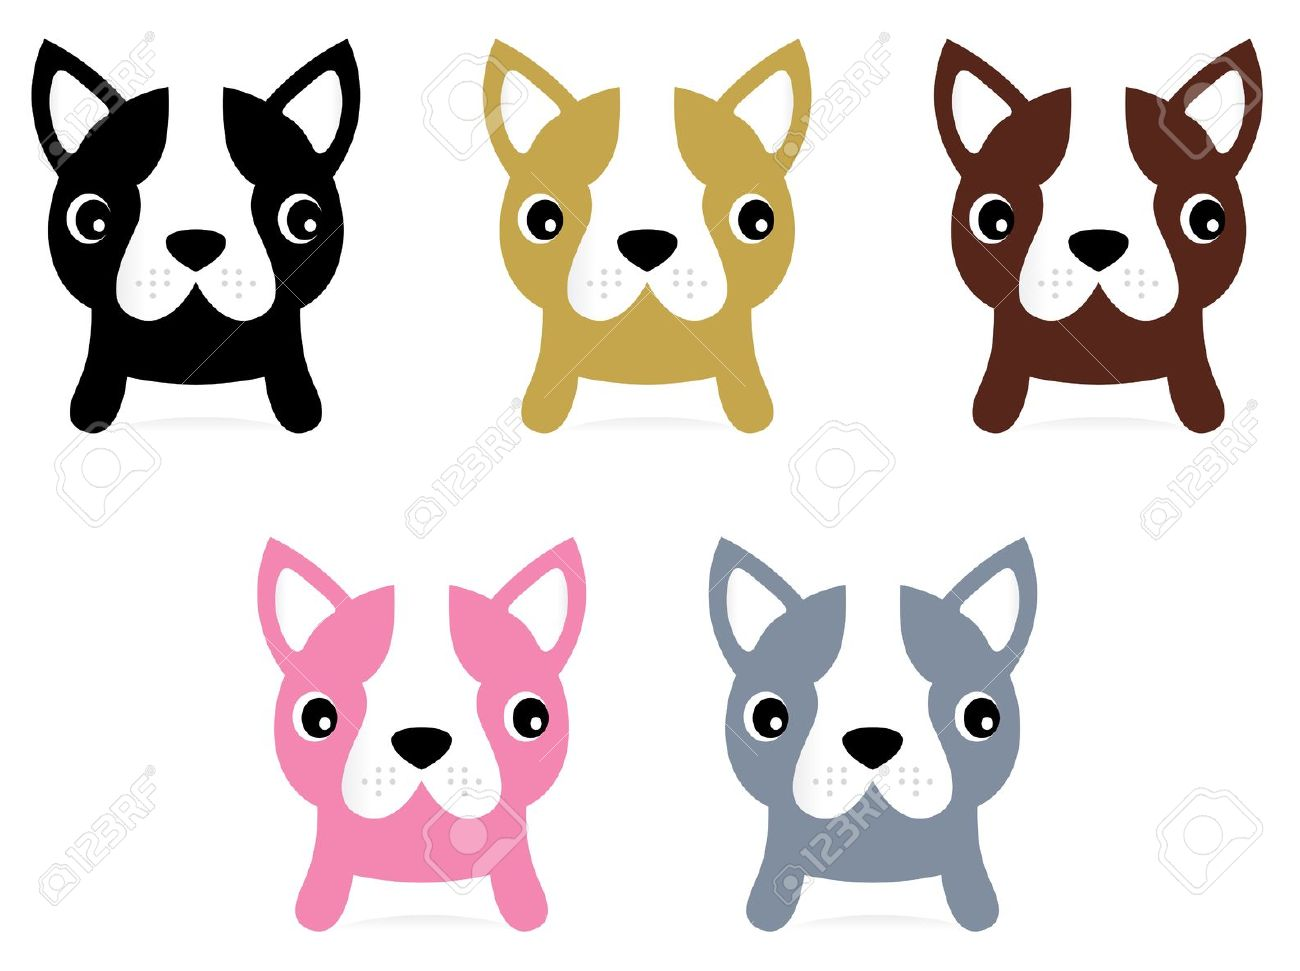 French Bulldog clipart #12, Download drawings